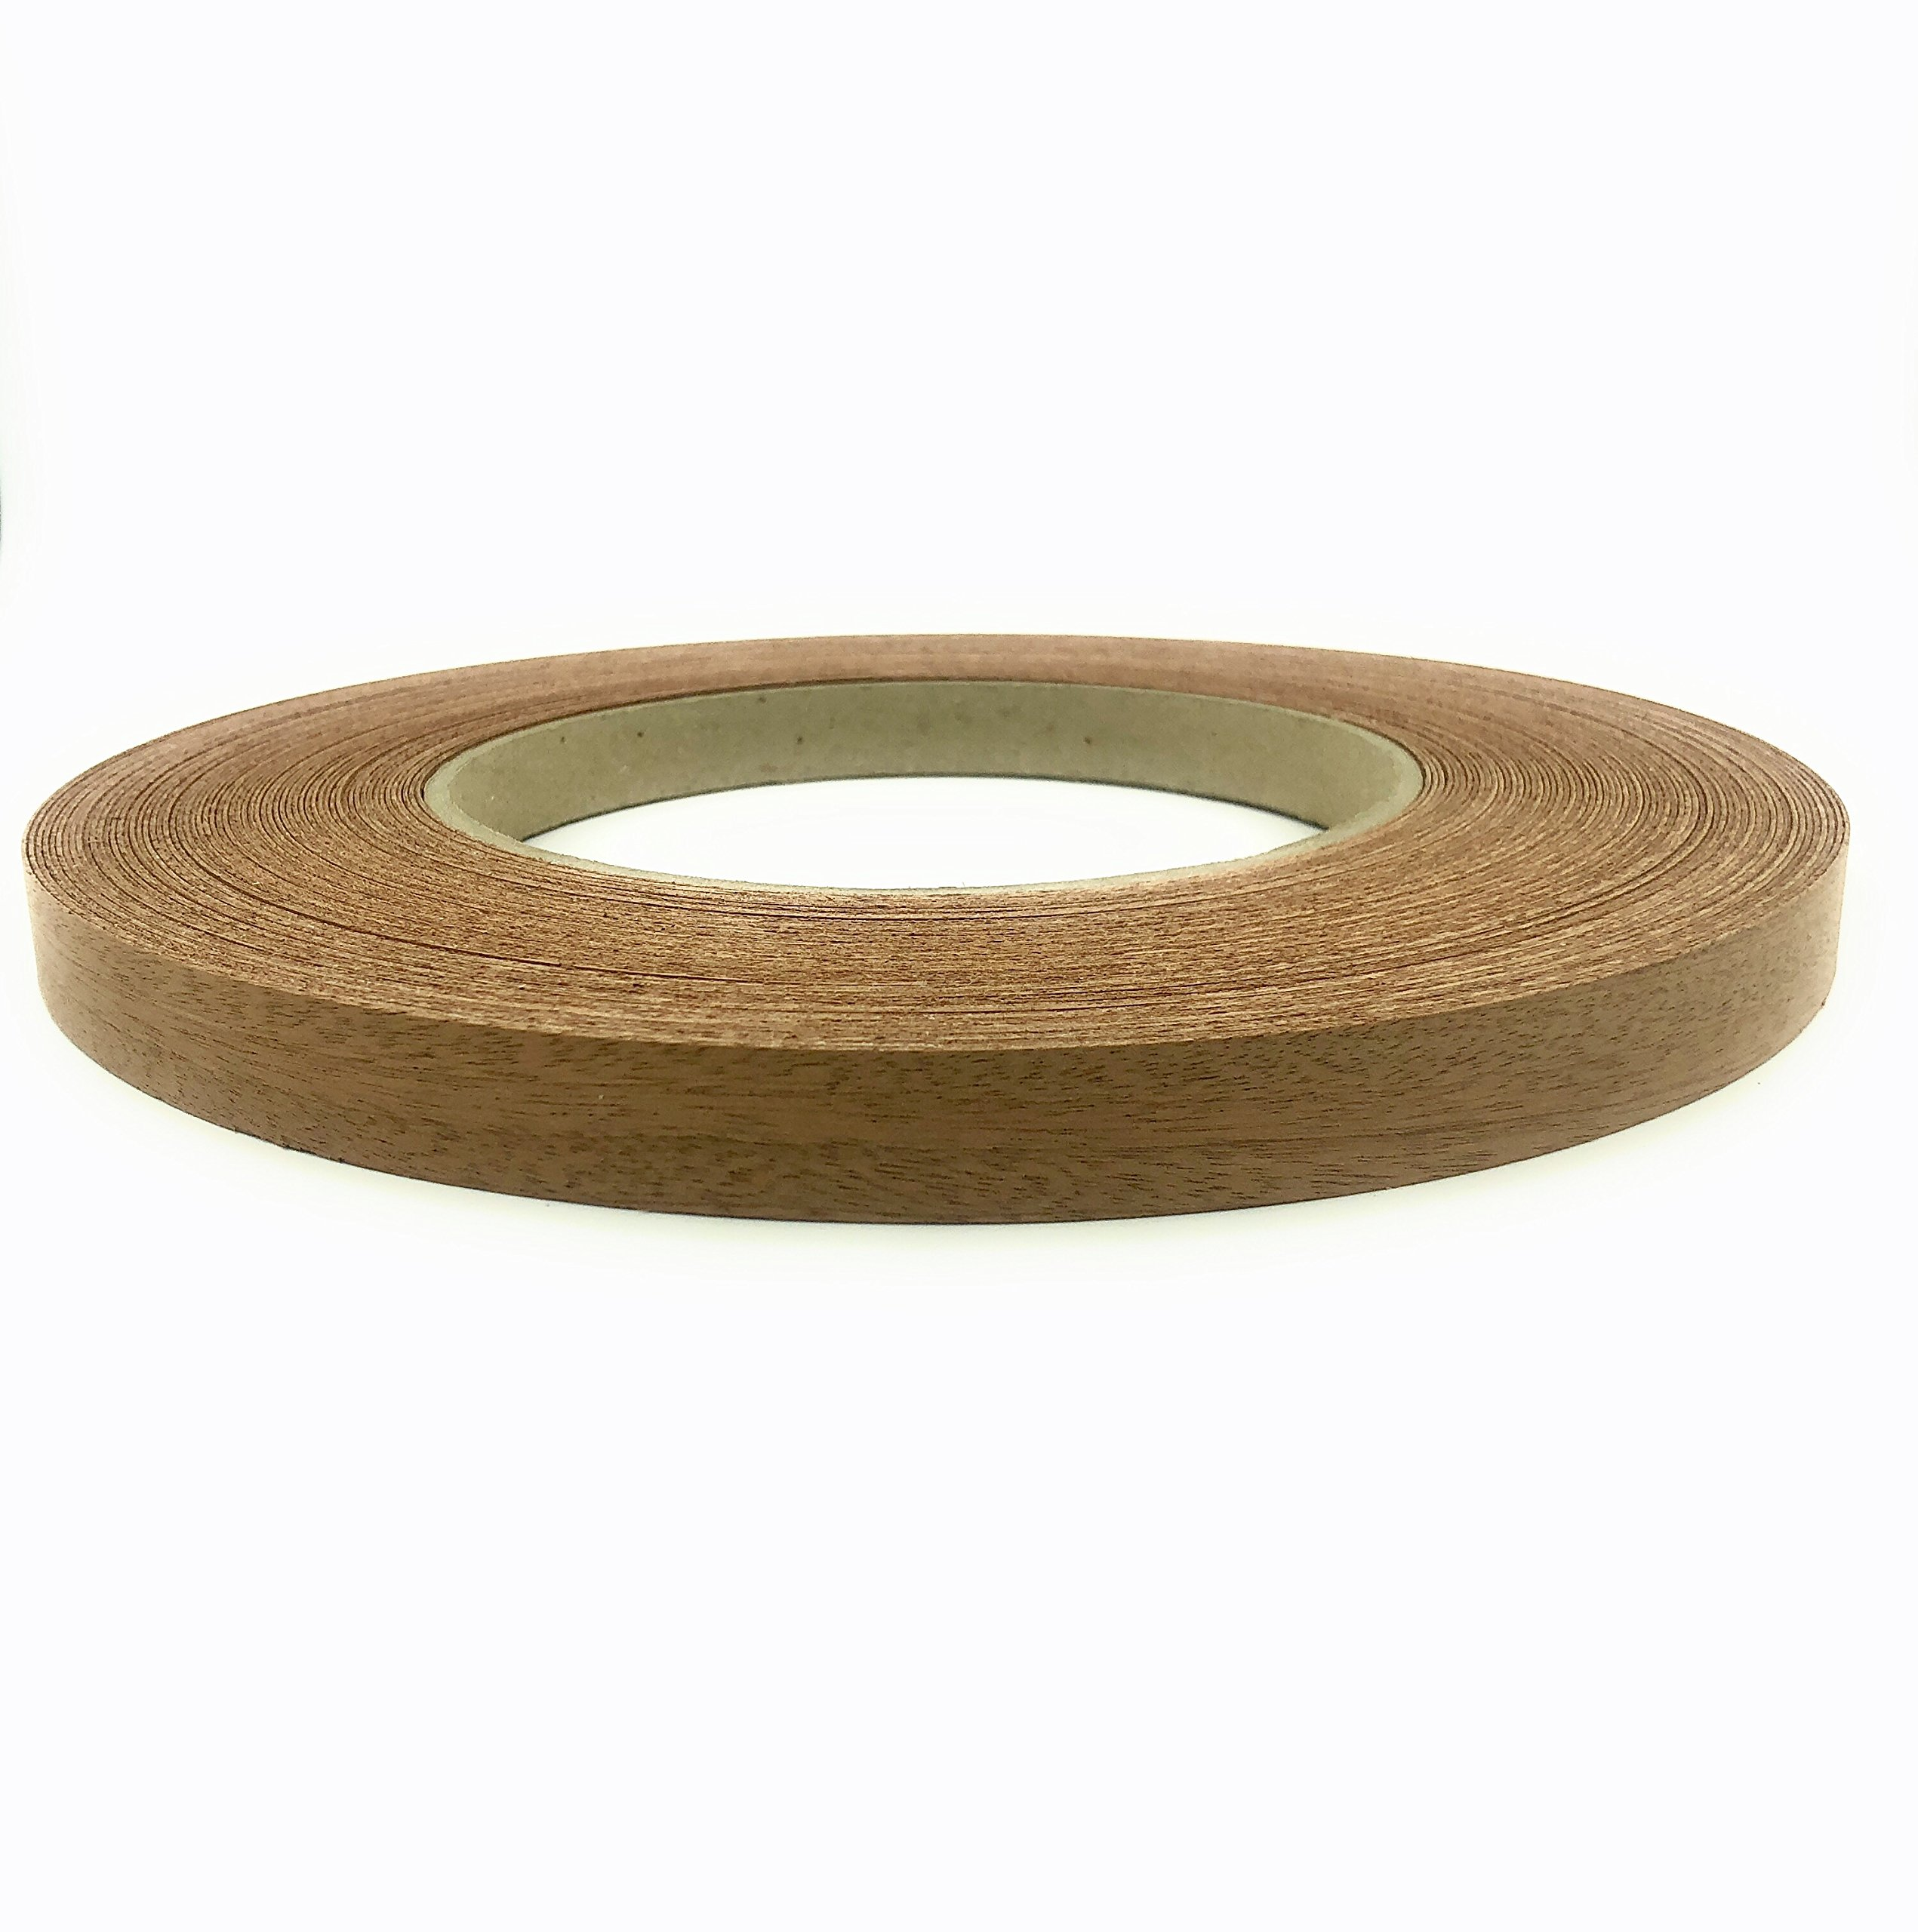 Mahogany 3/4'' X 250' Wood Veneer Edgebanding Preglued Roll. Easy Application Iron On with Hot Melt Adhesive. Smooth Sanded Finish. Flexible Edging. Made in USA.